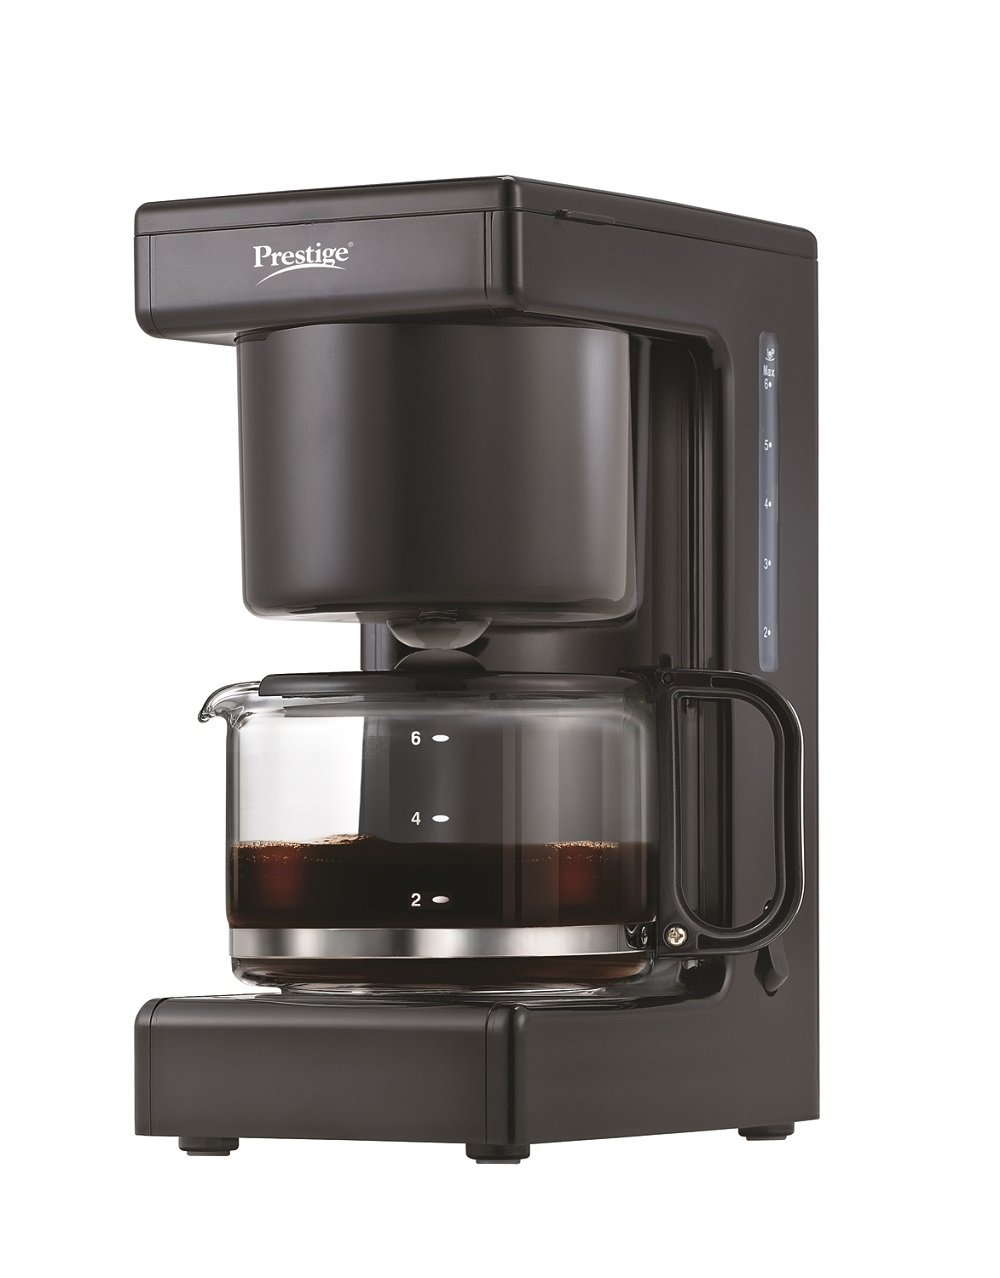 Prestige PCMD 1.0 650-Watt Drip Coffee Machine coffee maker coffee machine